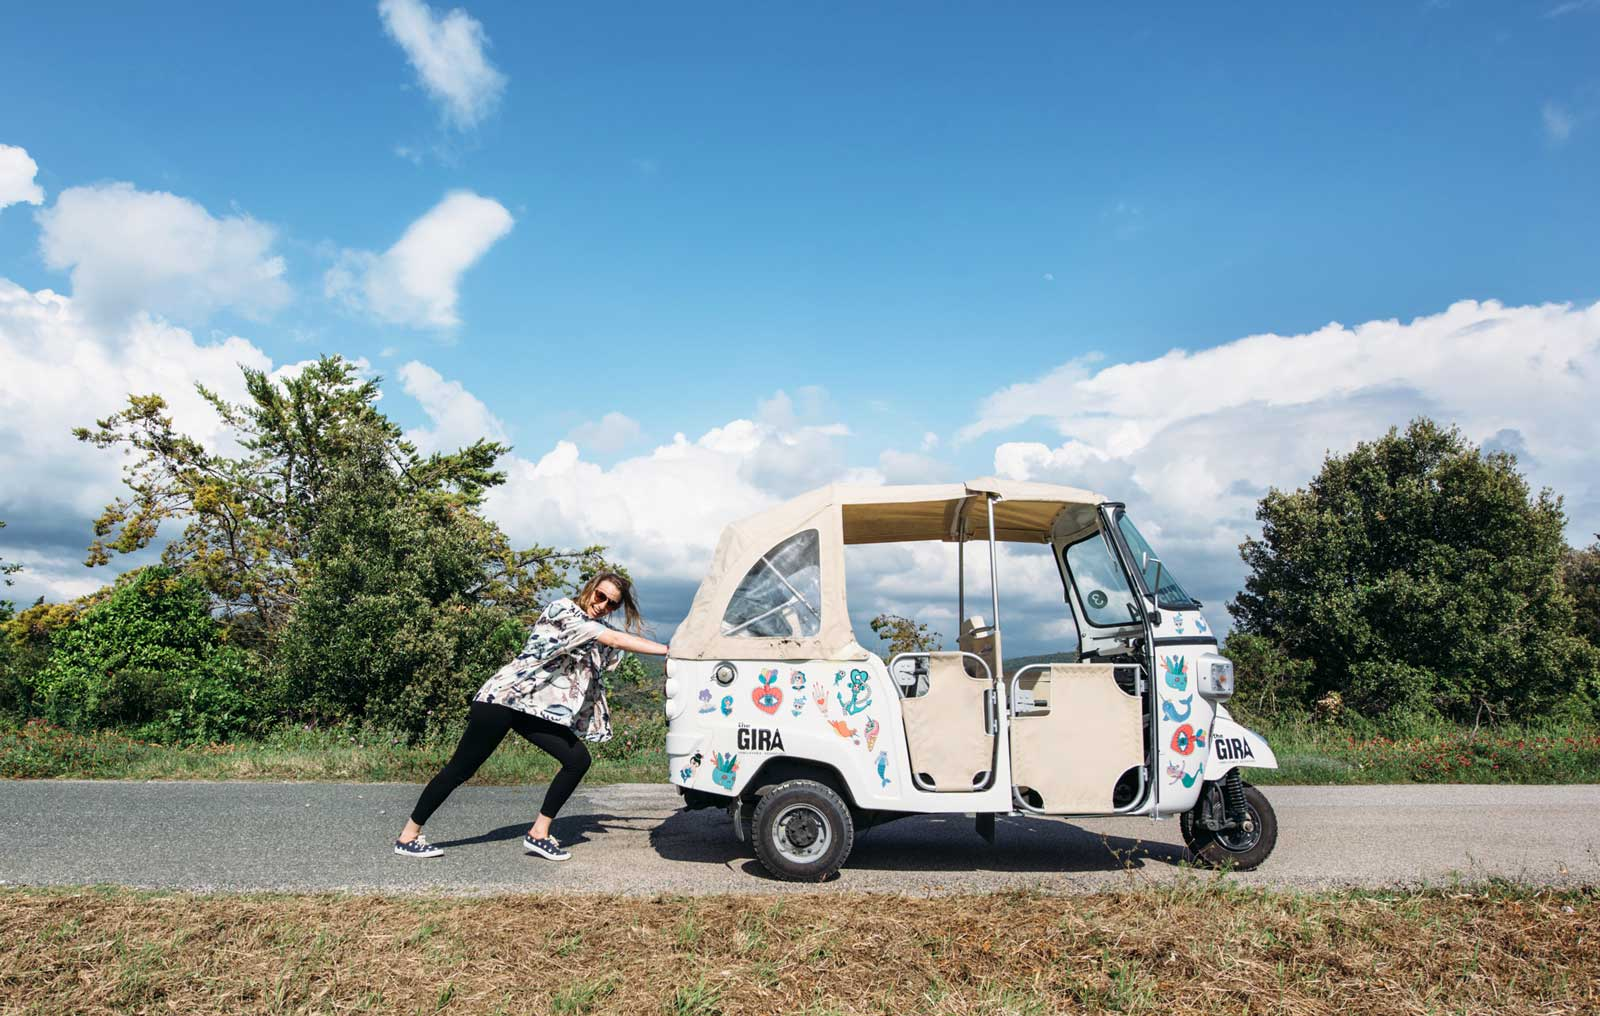 the gira ape tuktuk